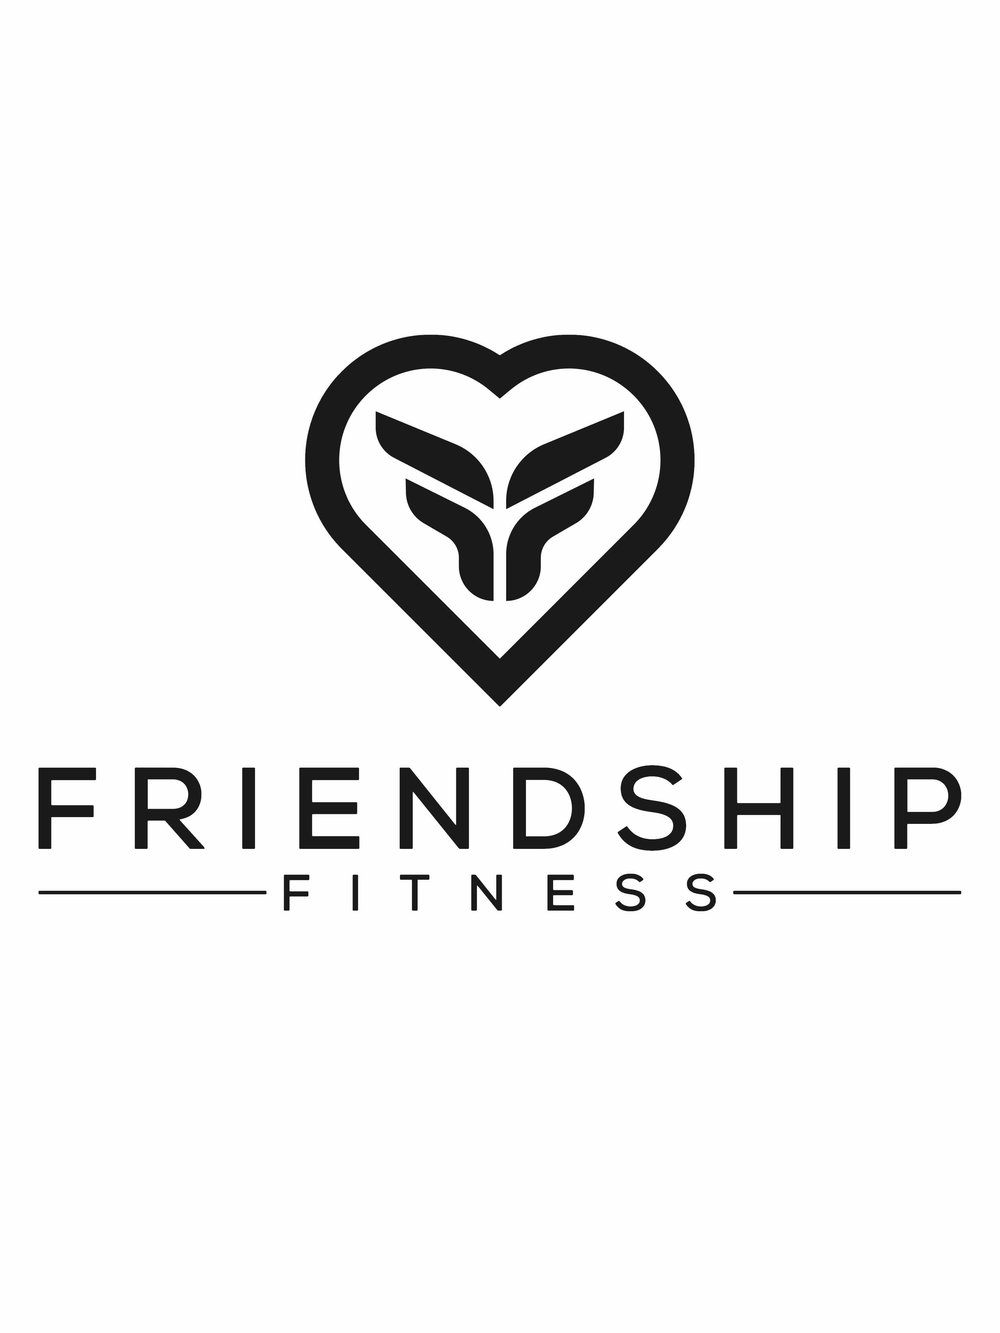 Friendship Fitness Logo (Poster).jpg